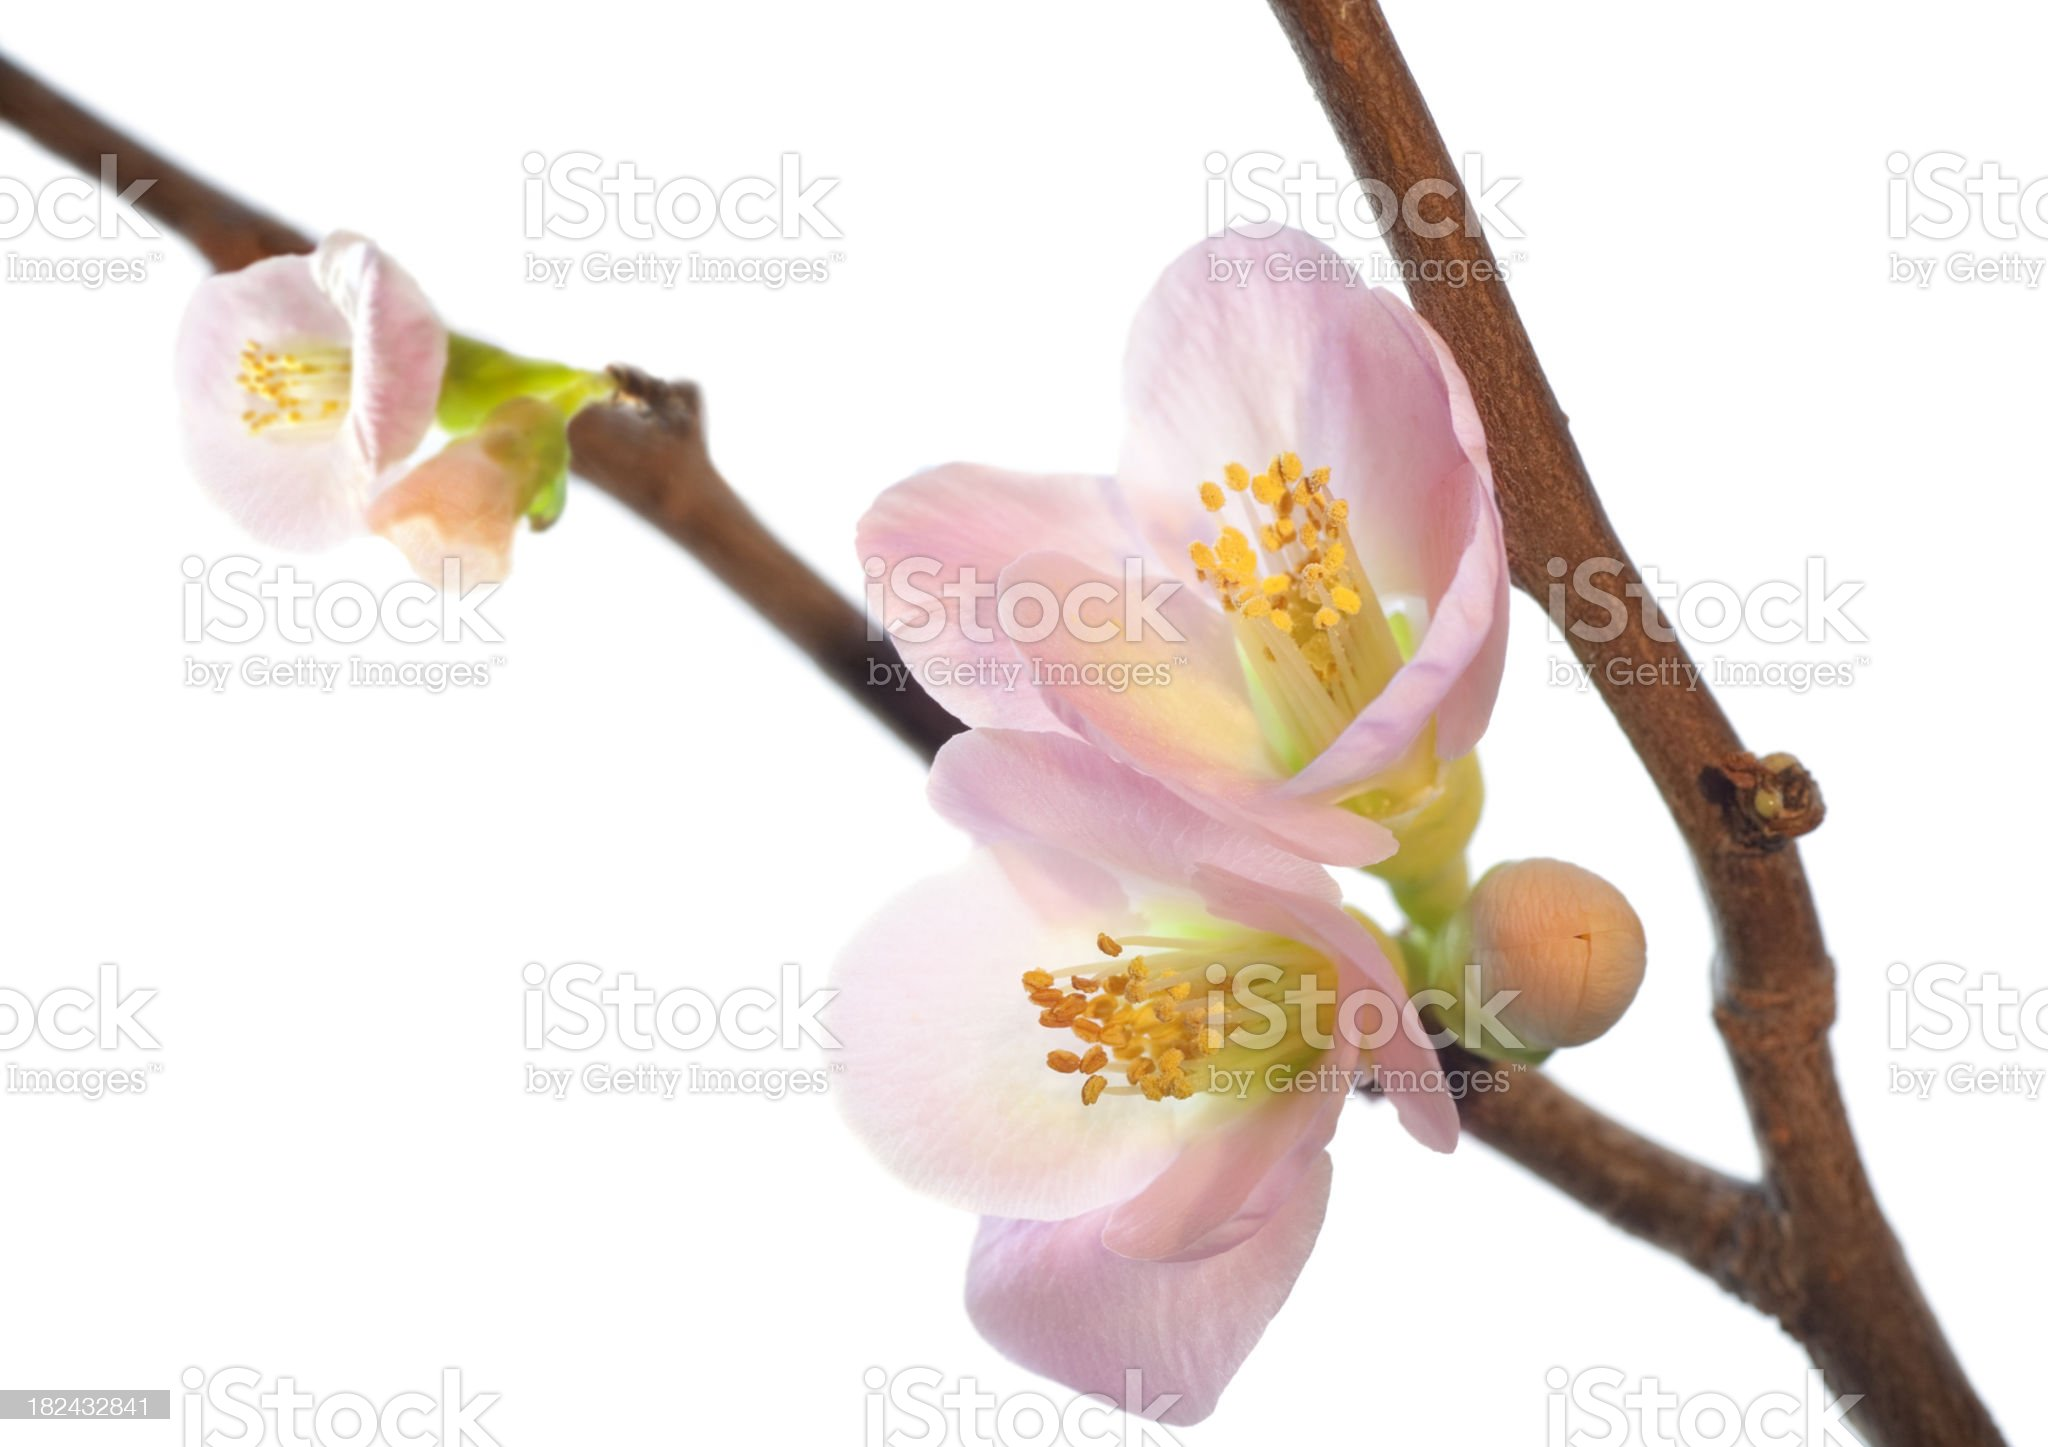 Flowering Quince Branch with Blossoms royalty-free stock photo